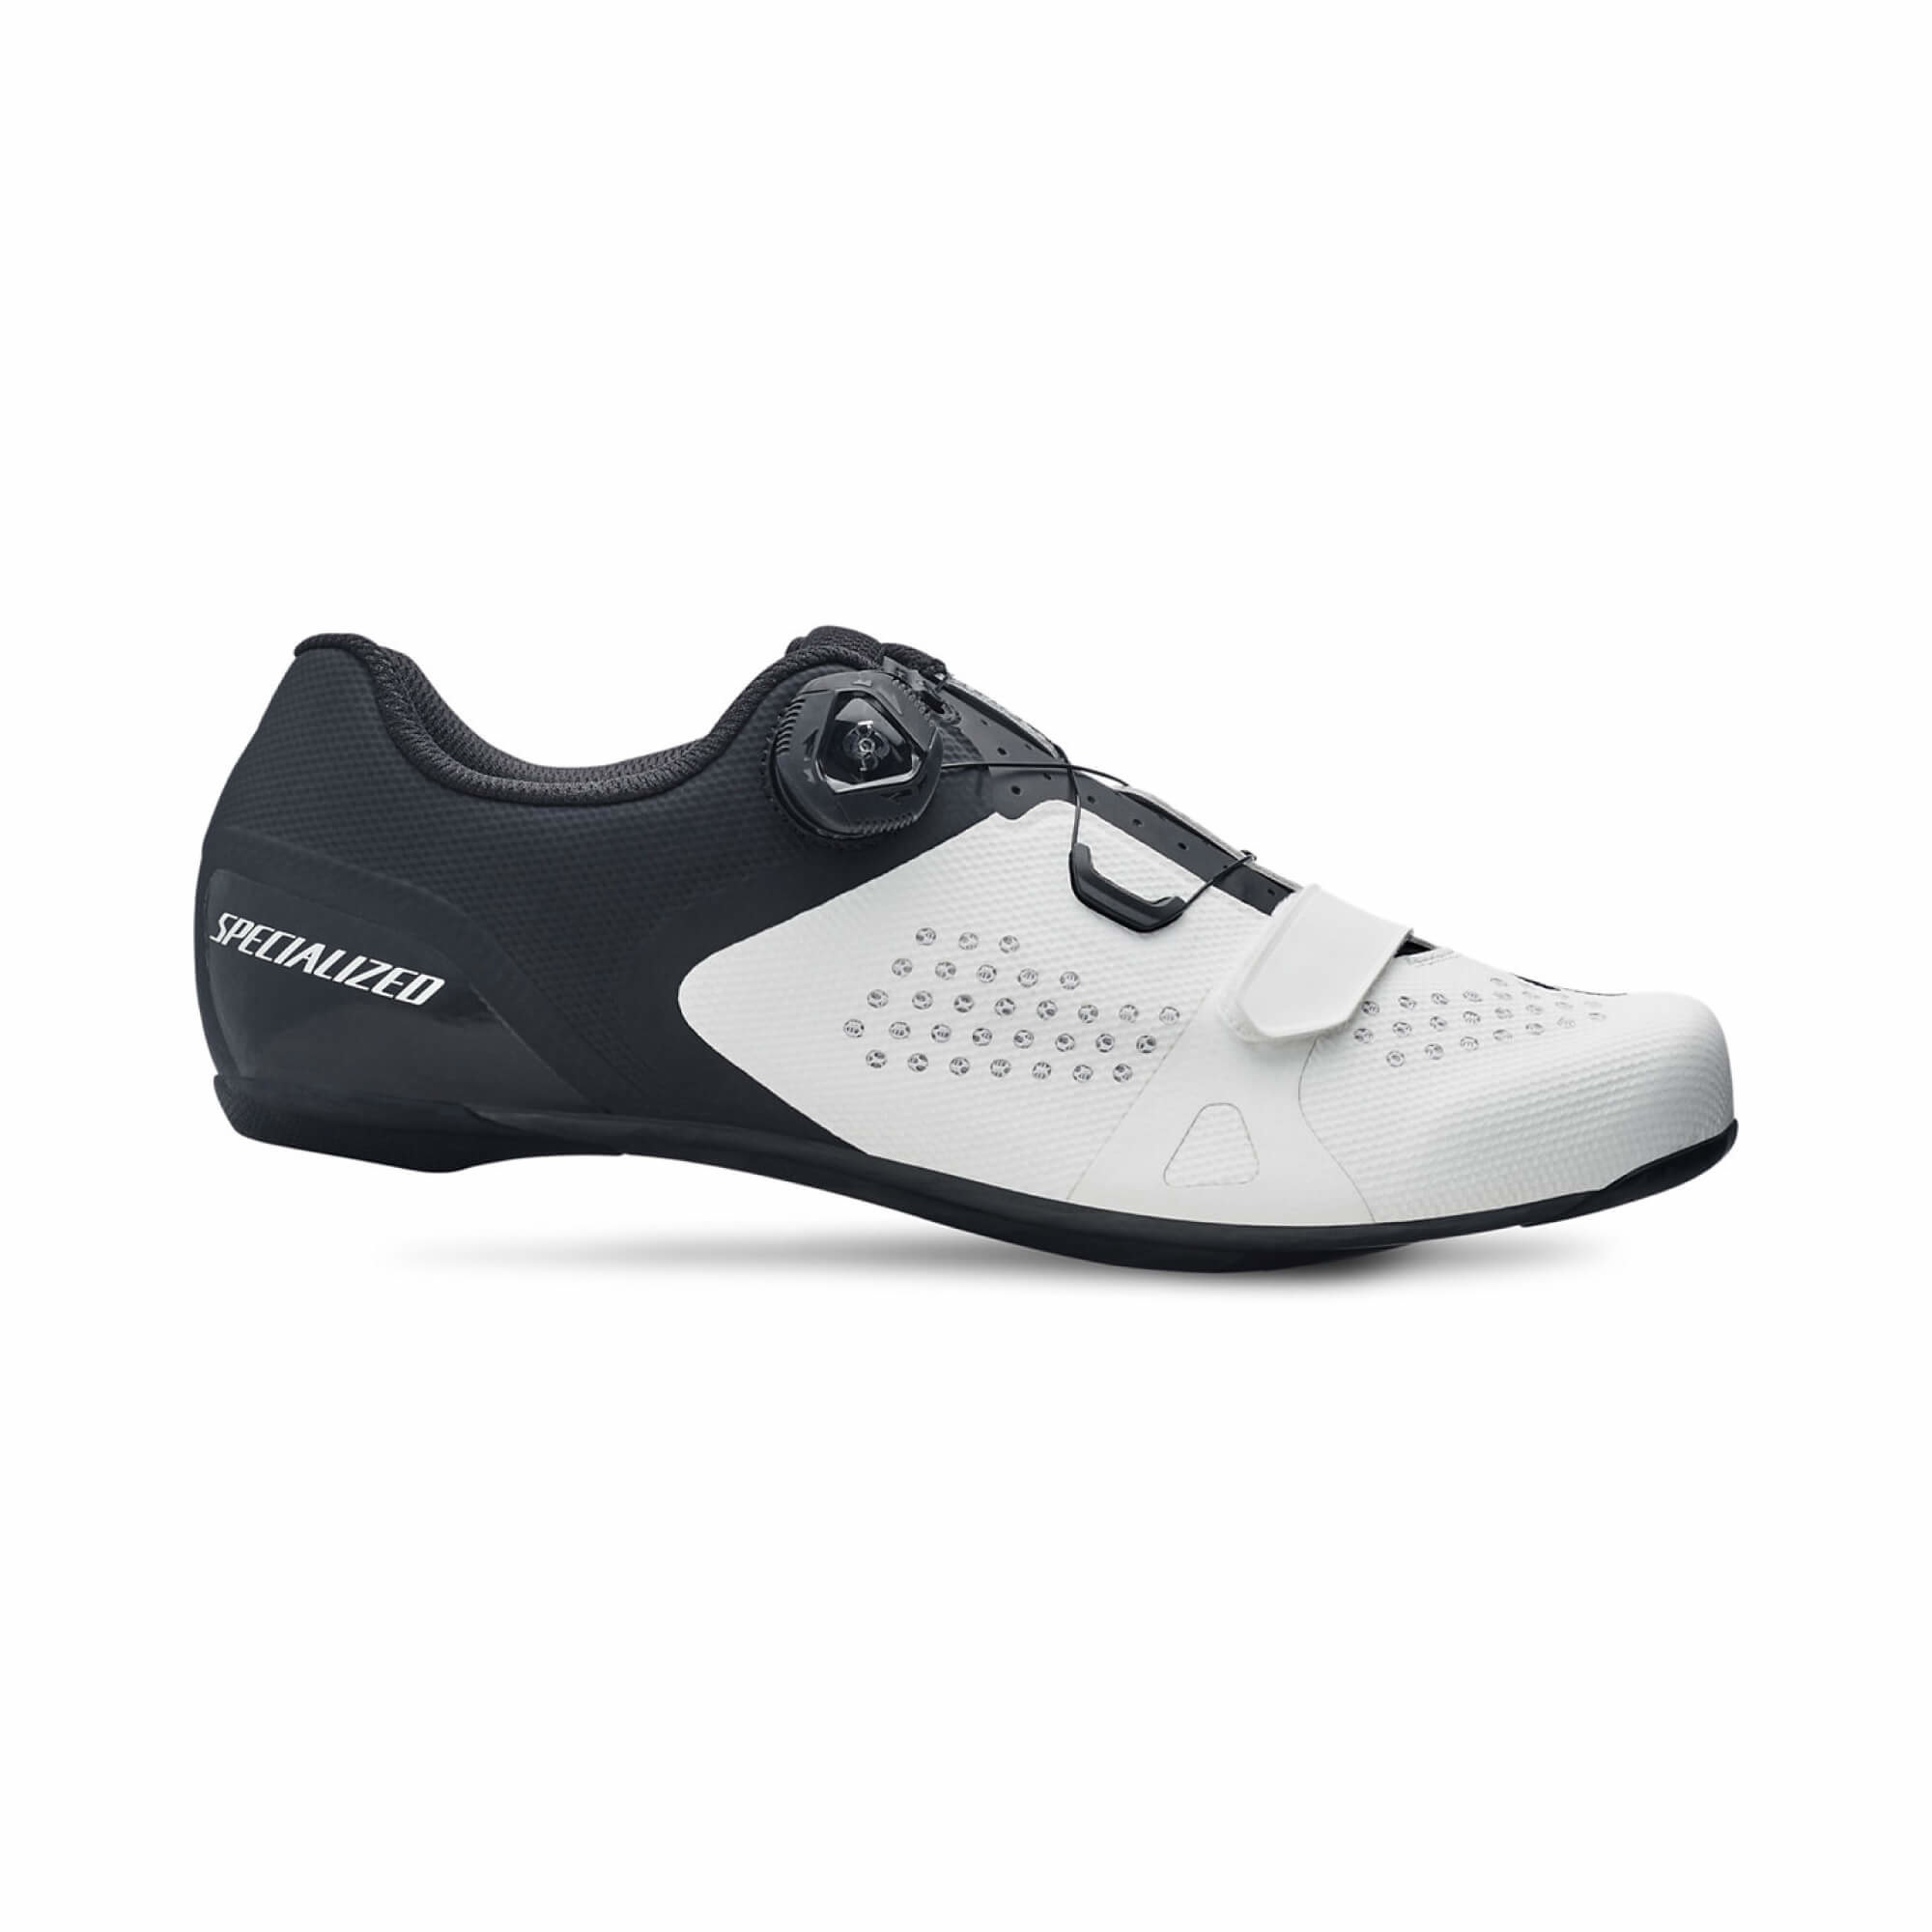 Torch 3.0 Road Shoe-9